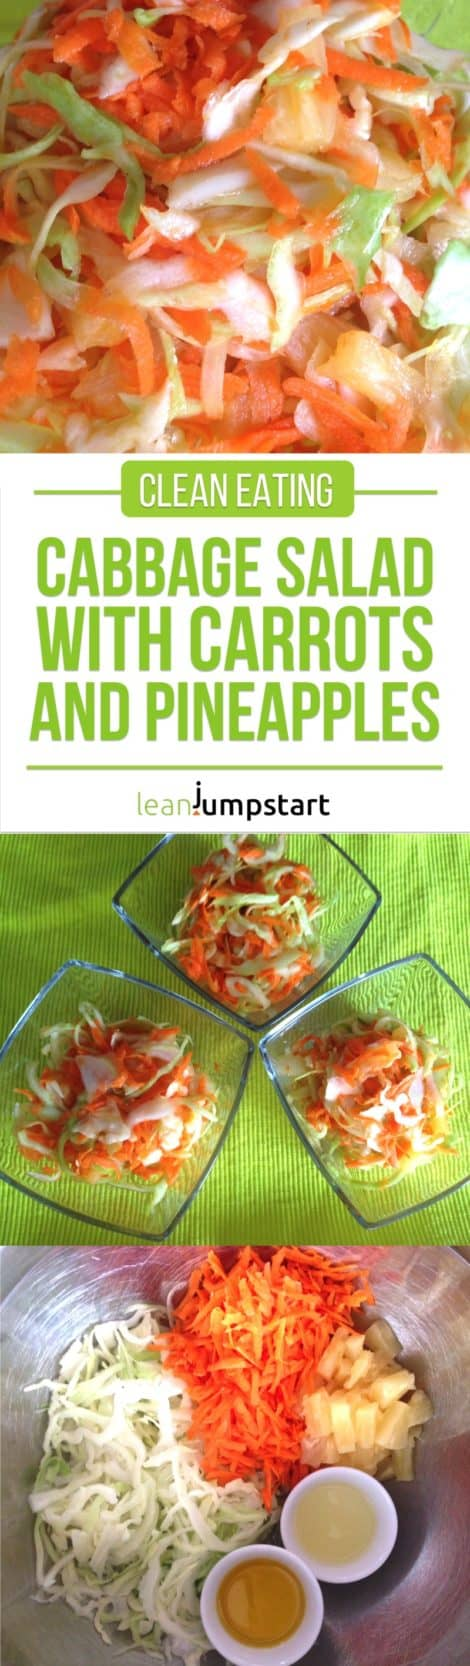 Clean eating cabbage salad recipe with carrots and pineapples: yummy and easy